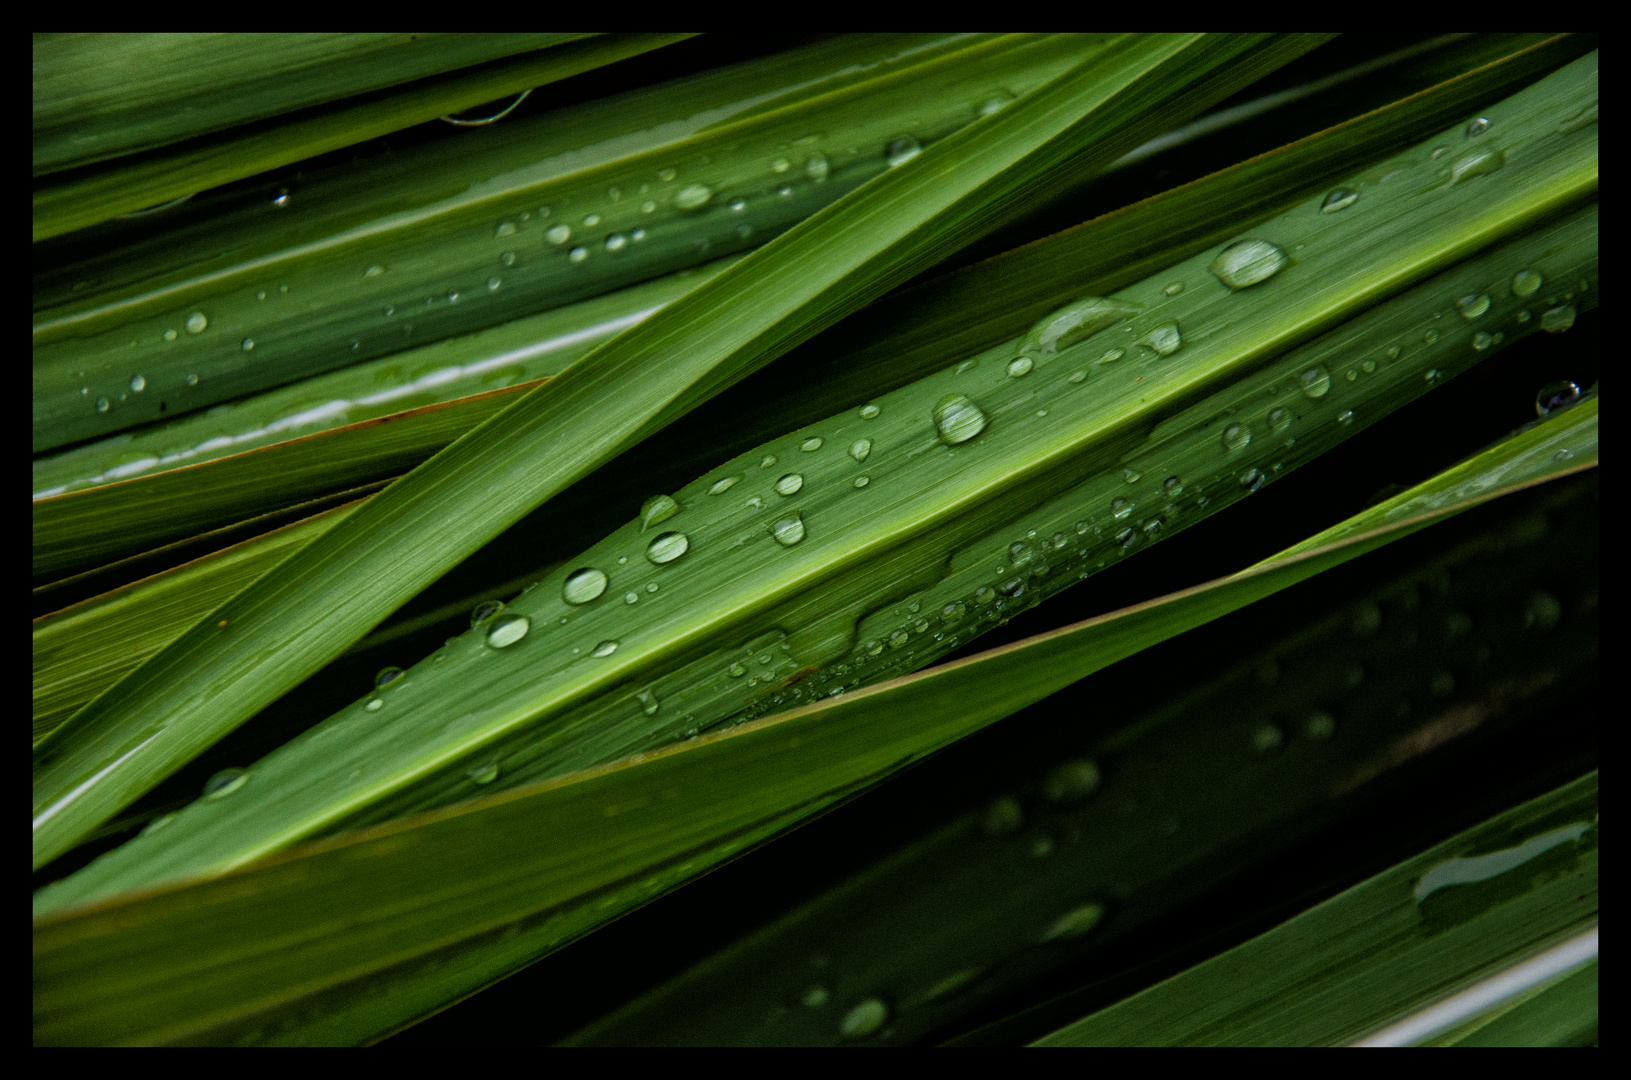 Waterdrops on green leaves No.1